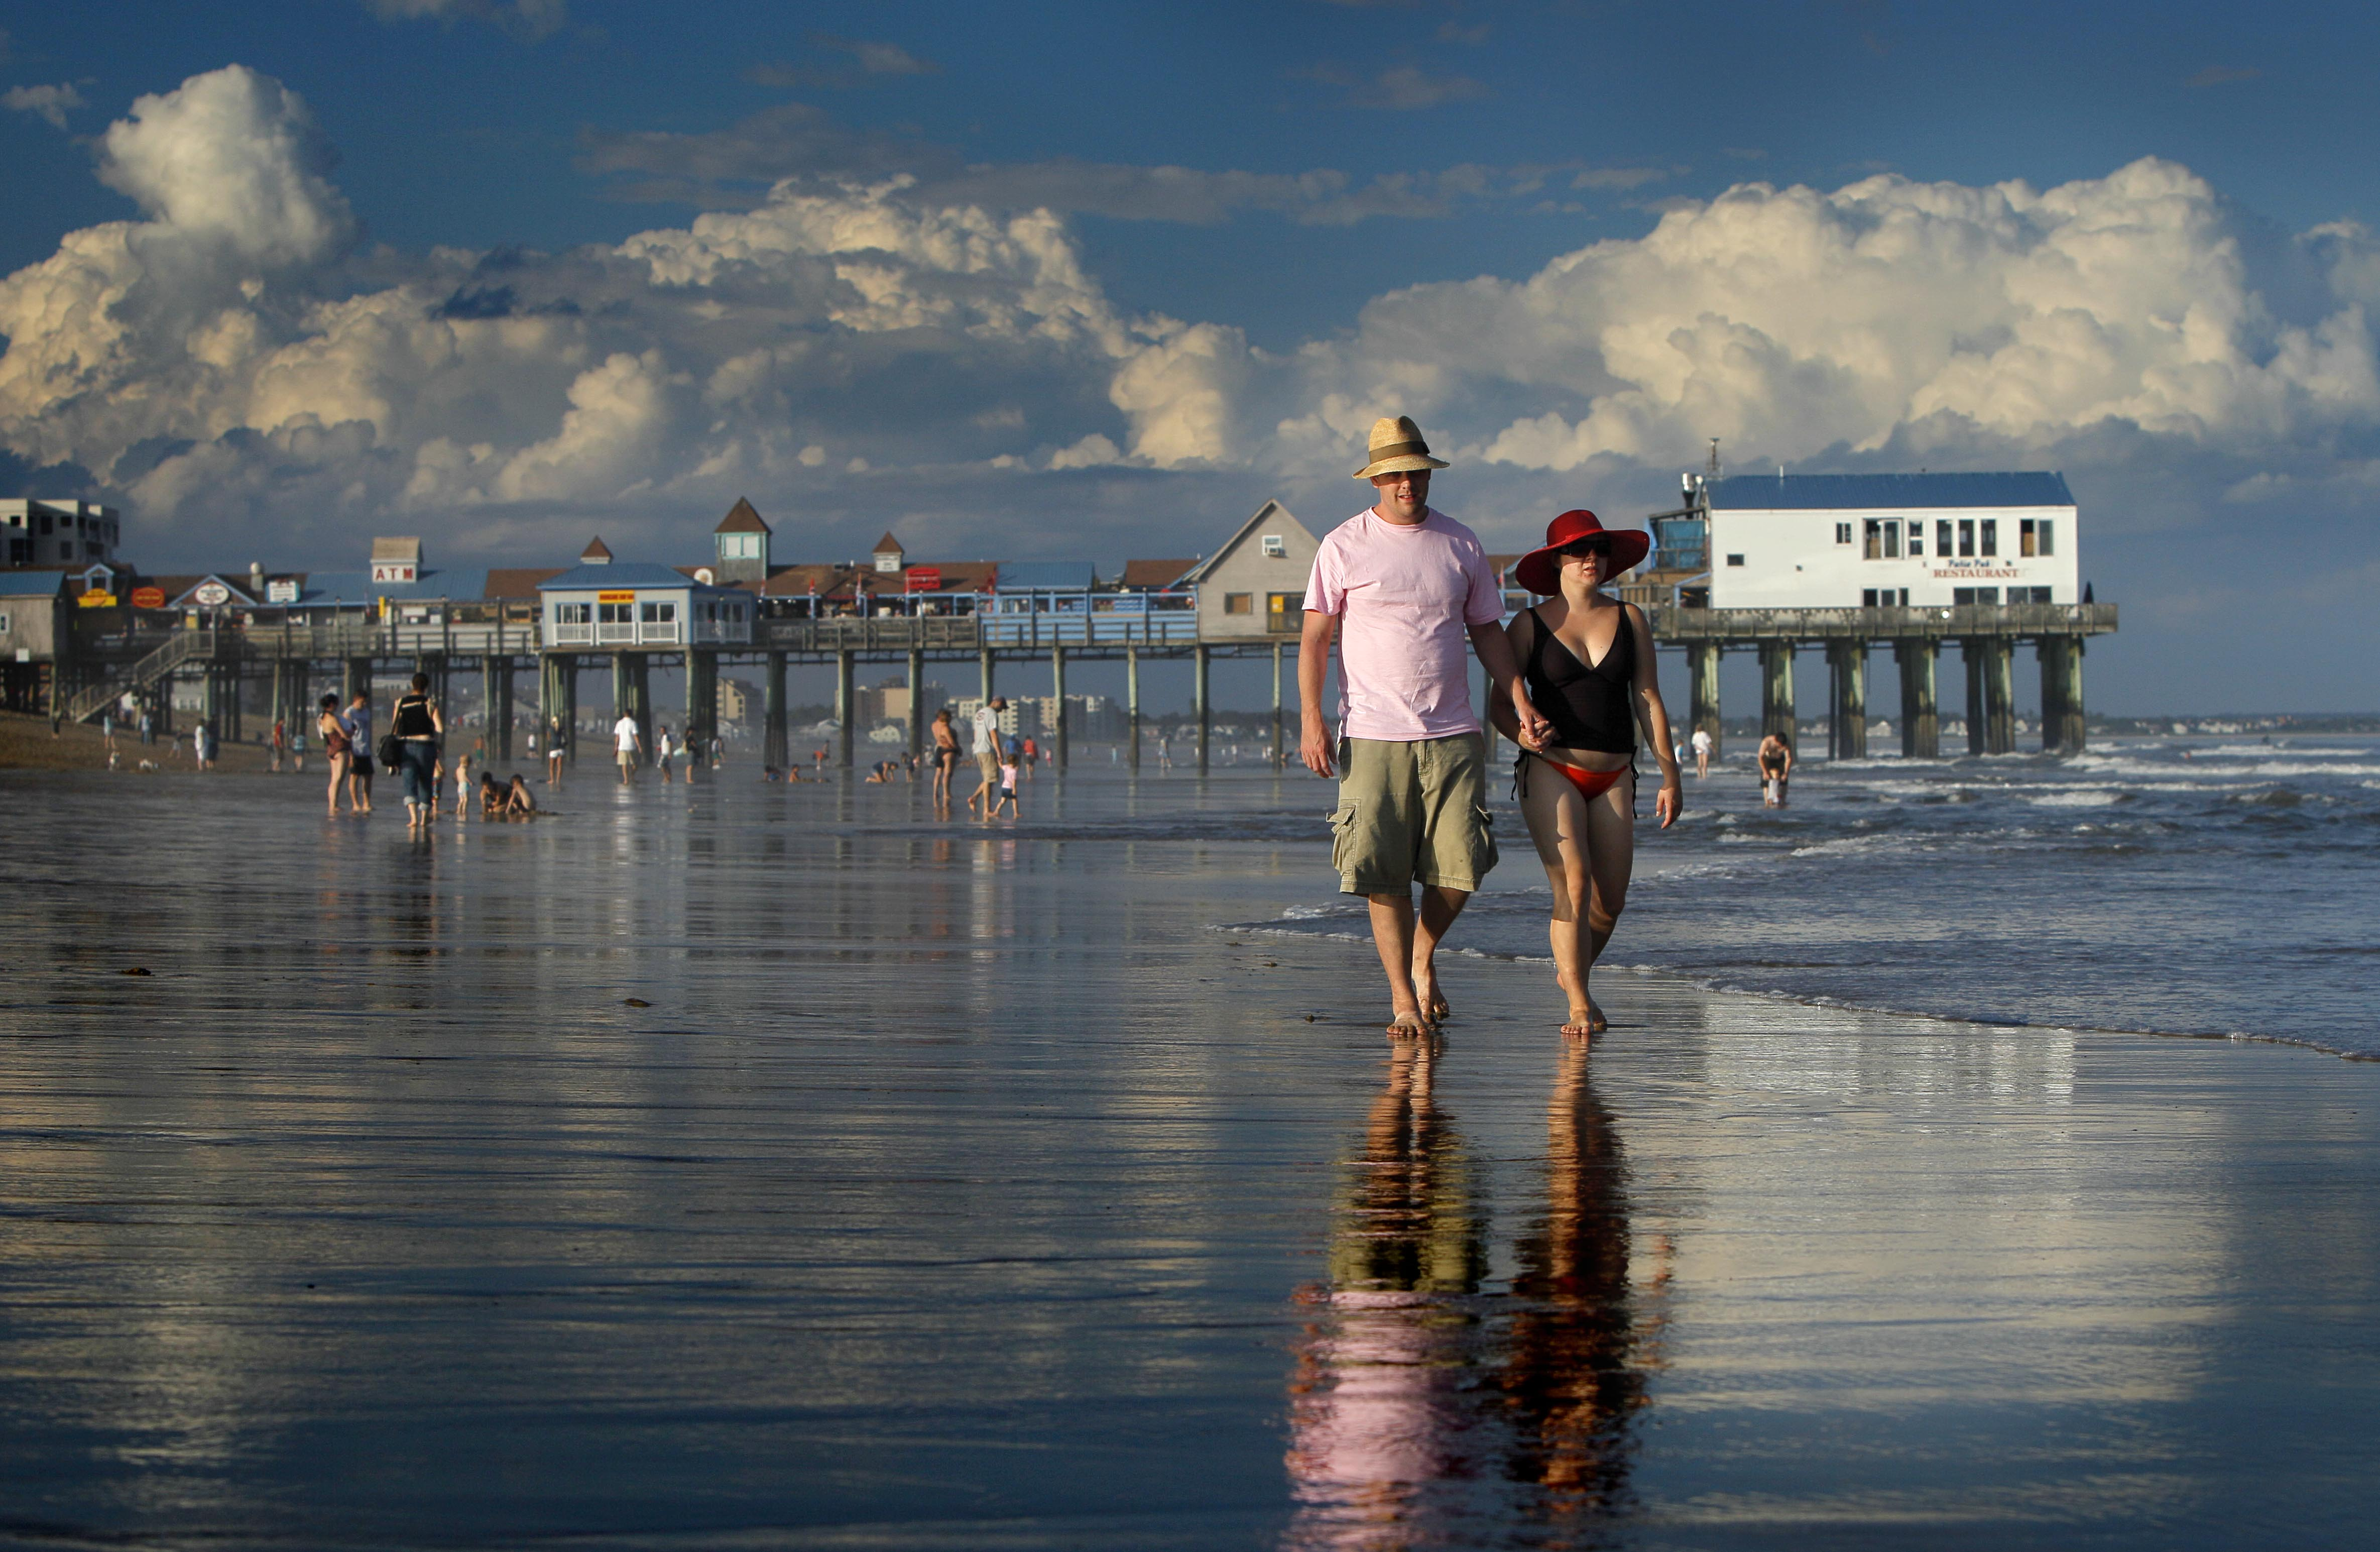 Dan Horner (left) and Cynthia Belaskie of Toronto stroll along the ocean in Old Orchard Beach in August 2010. Tourism is Maine's most important industry, generating more than $531 million in tax revenues and supporting 176,633 jobs in 2006, according to the Maine State Planning Office. Tourism officials are already optimistic about this summer.